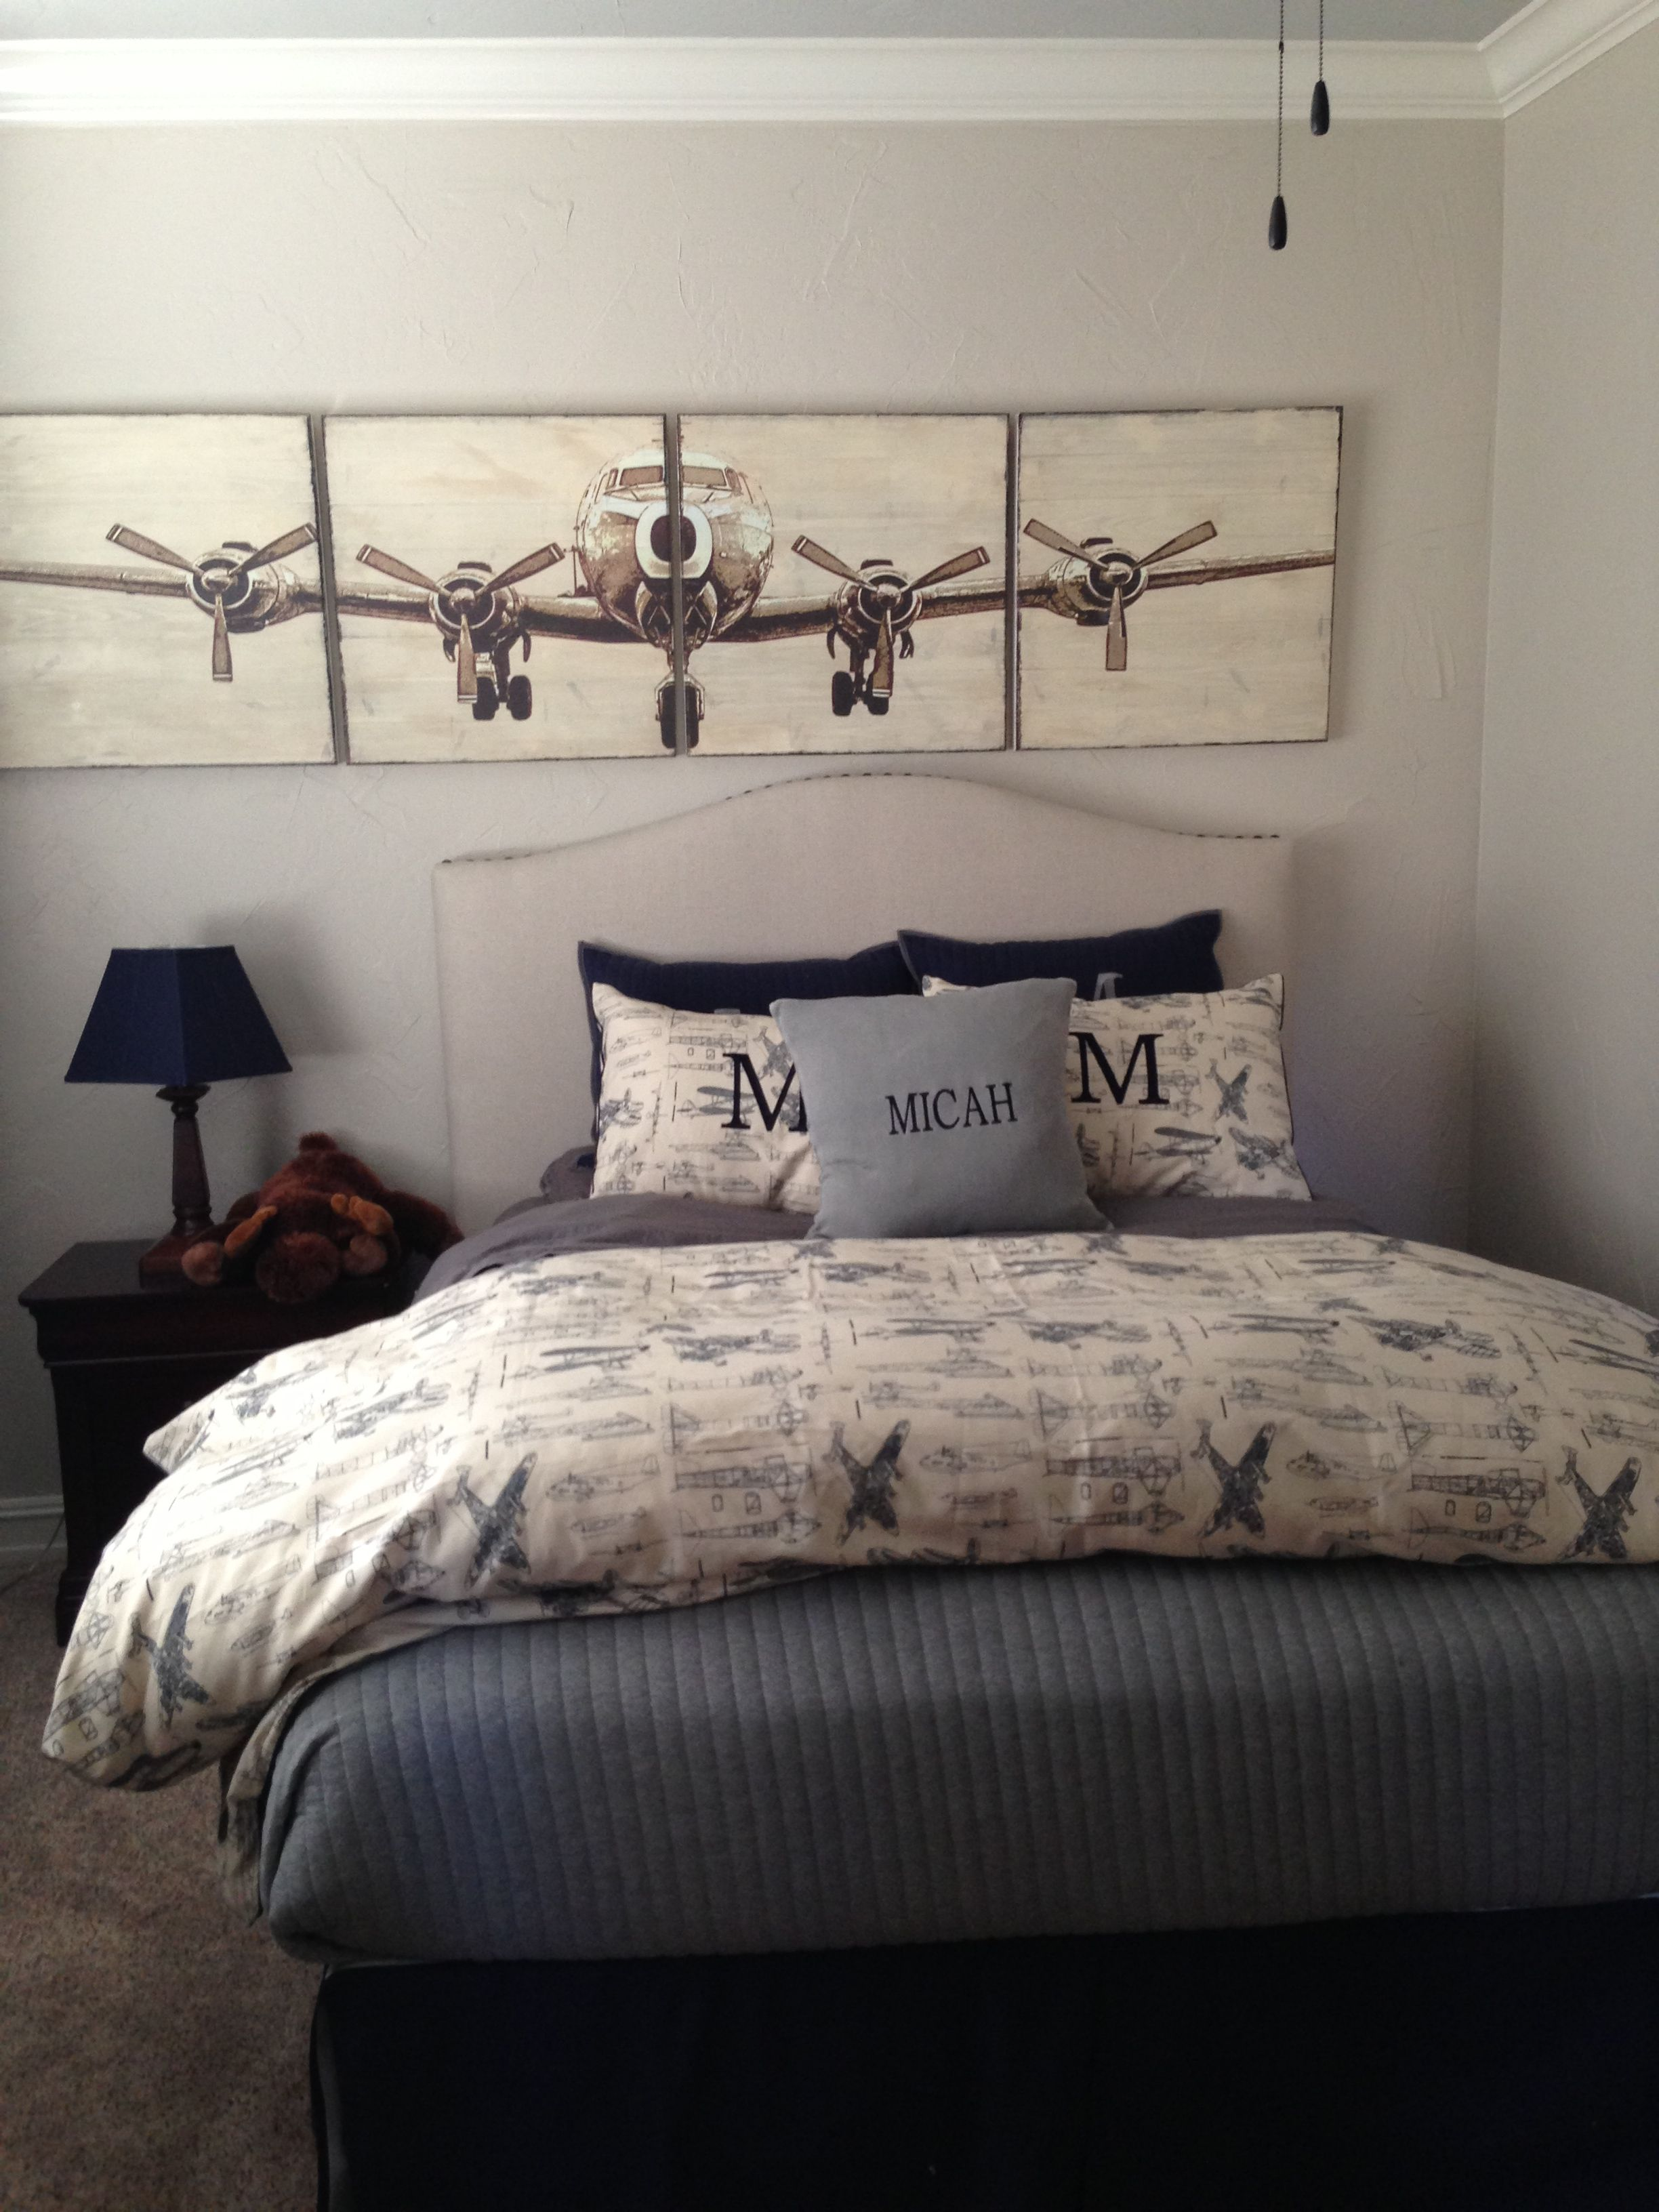 Get Inspired By This Vintage Decor Ideas Vintagedecor Vintagestyle Vintagehomeideas Http